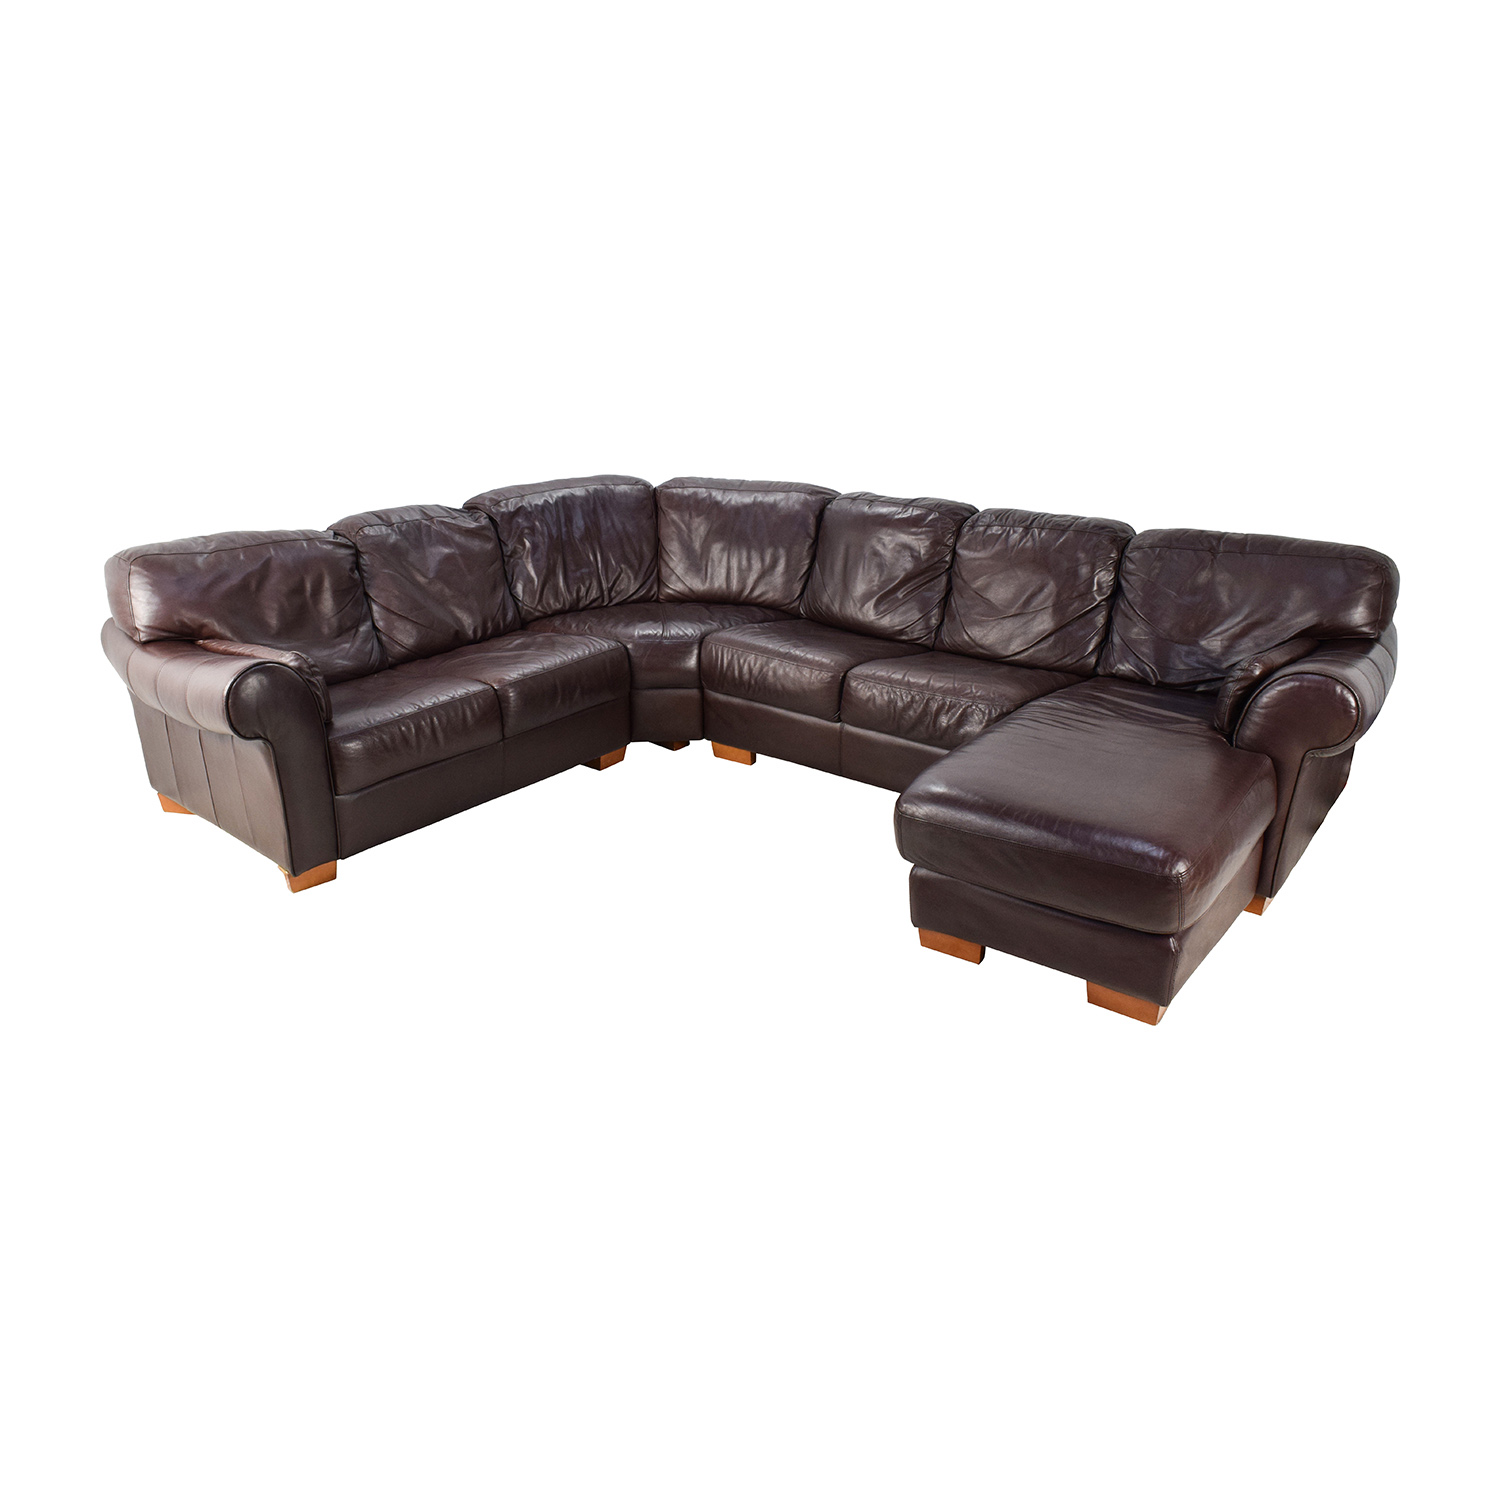 63% OFF - Raymour & Flanigan Raymour & Flanigan 4-Piece Leather Sectional /  Sofas